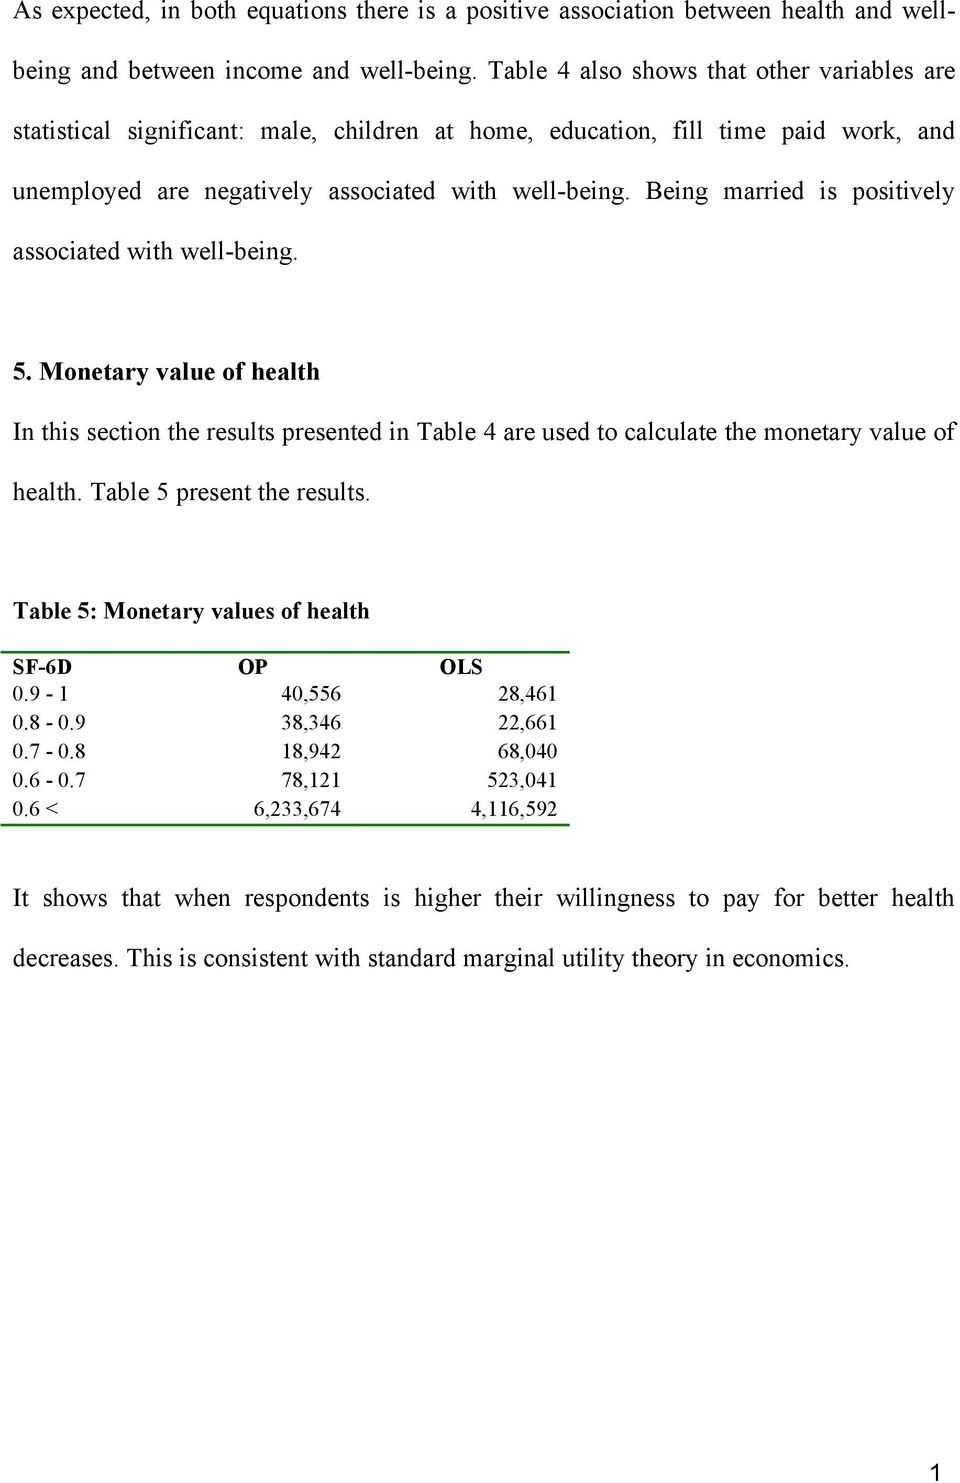 Being married is positively associated with well-being. 5. Monetary value of health In this section the results presented in Table 4 are used to calculate the monetary value of health.